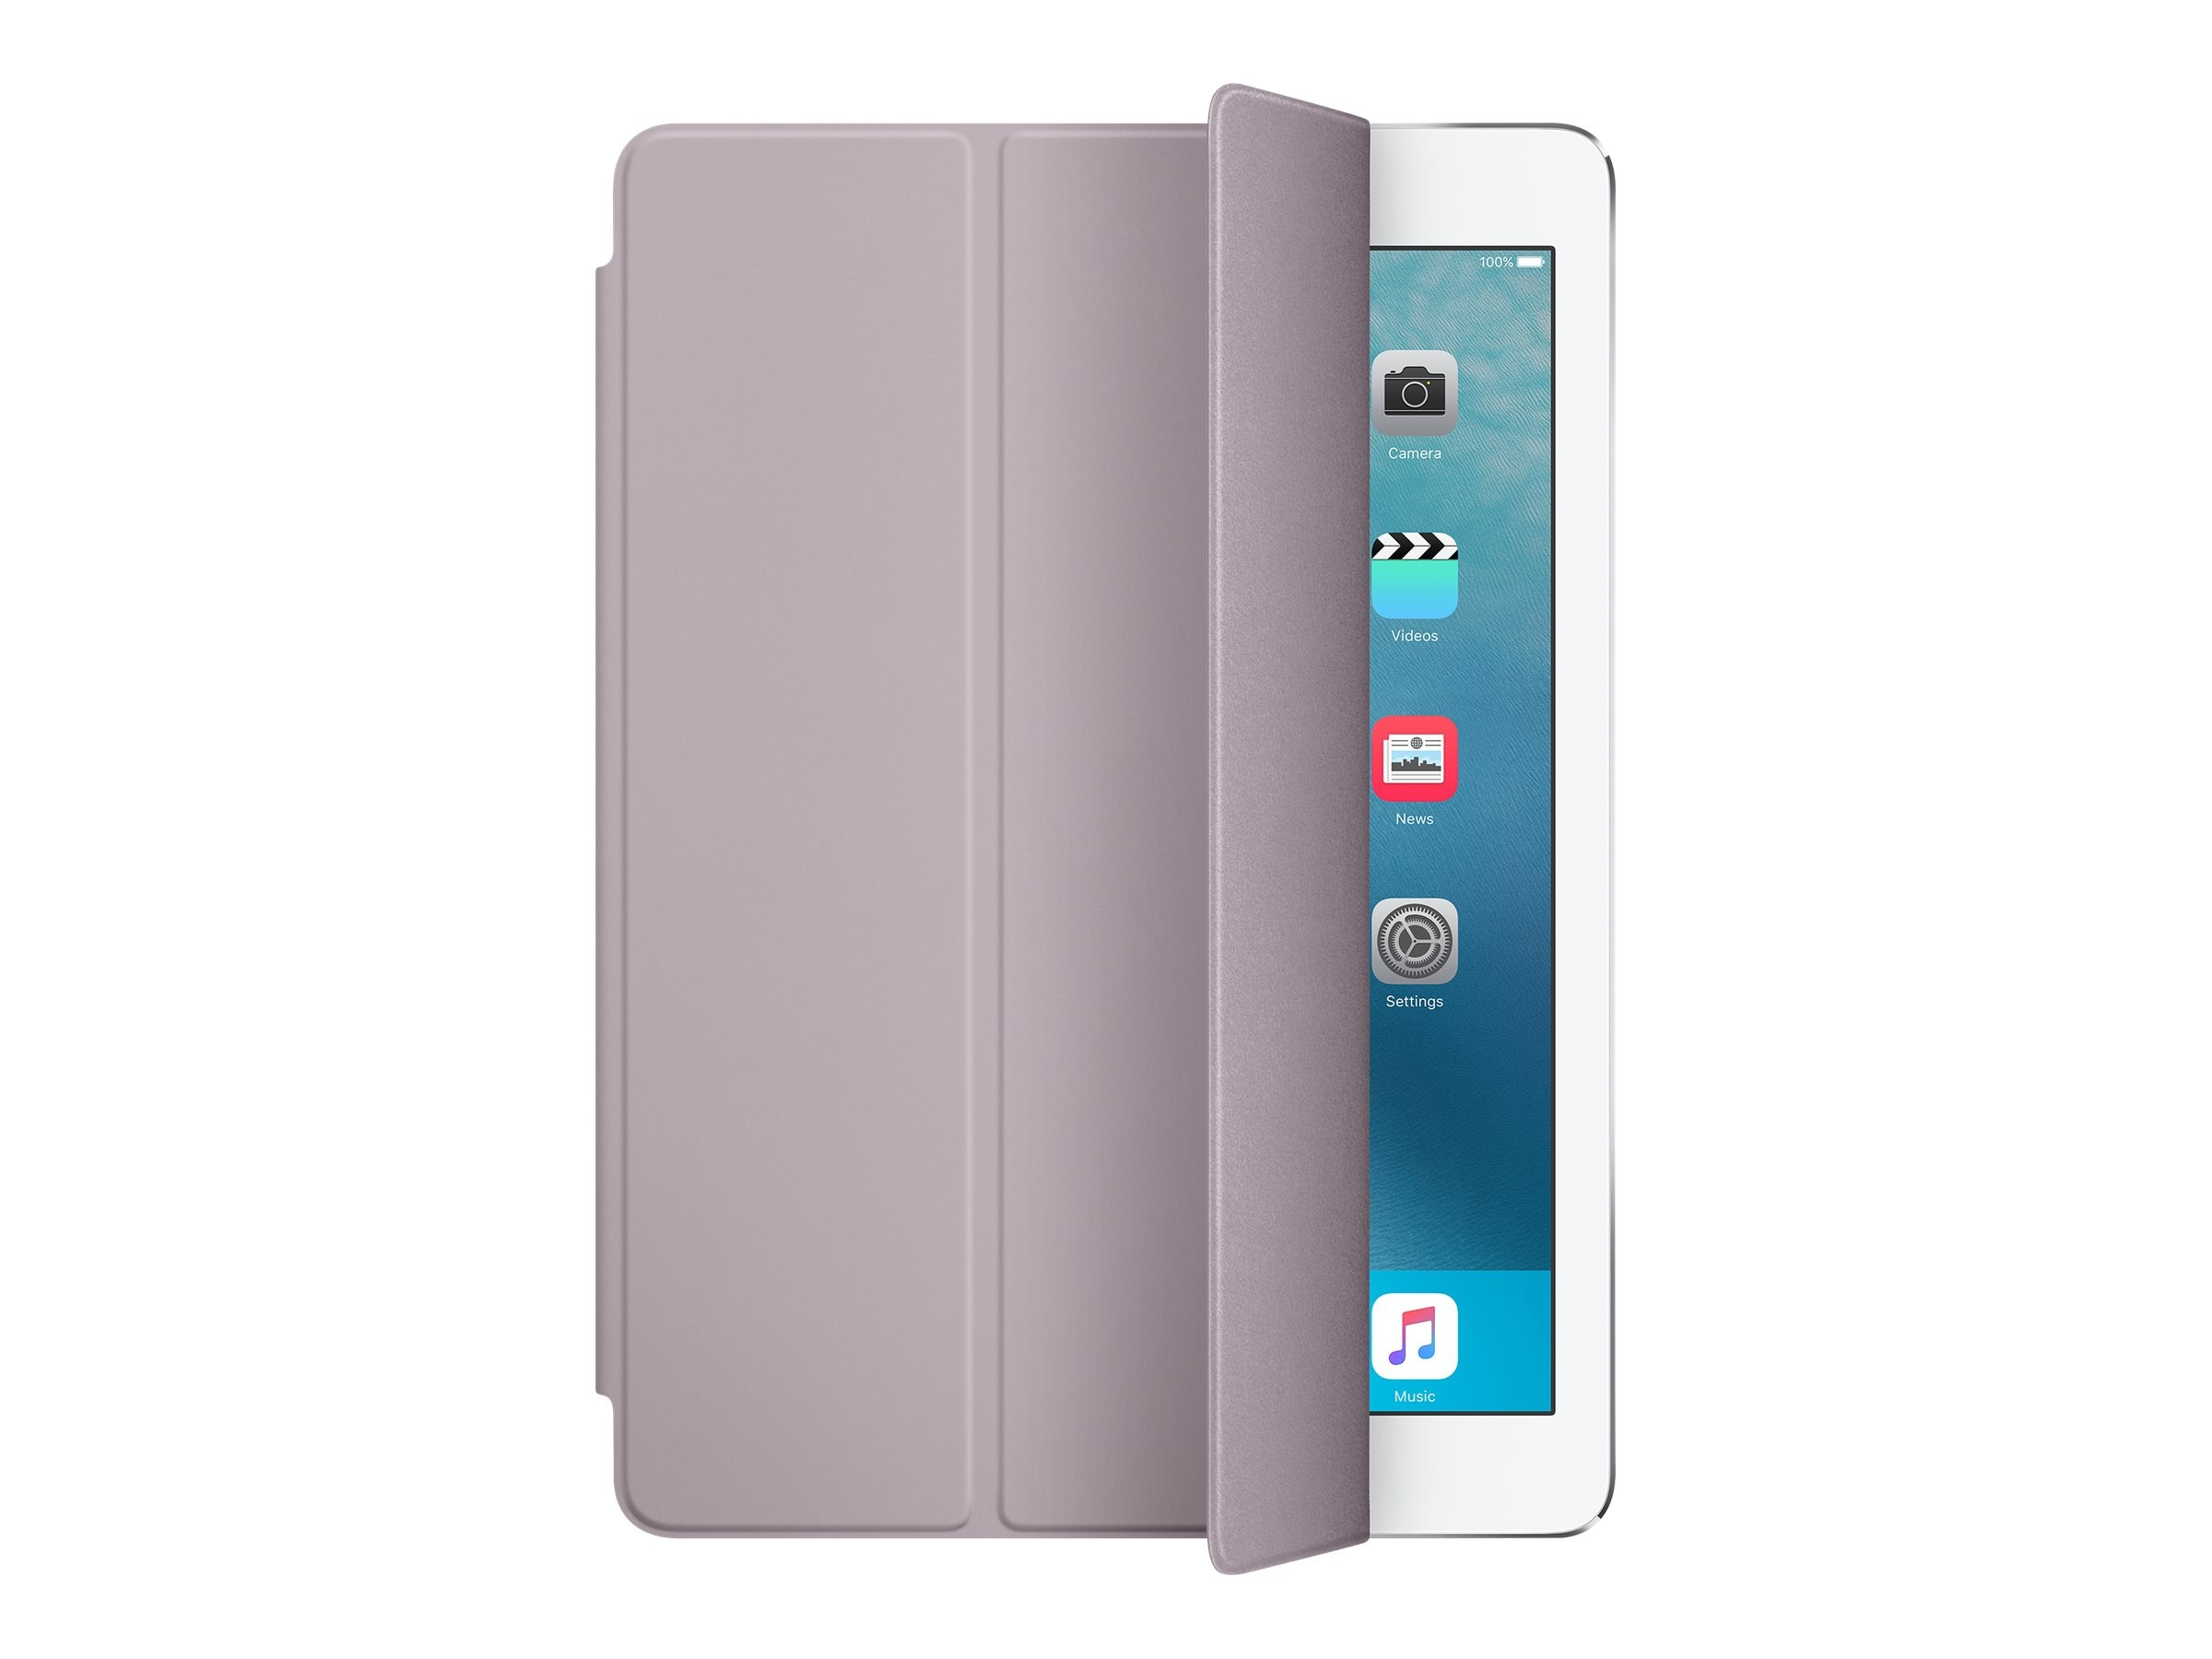 Apple Smart Cover for iPad Pro 9.7, Lavender, MM2J2AM/A, 31812271, Carrying Cases - Tablets & eReaders